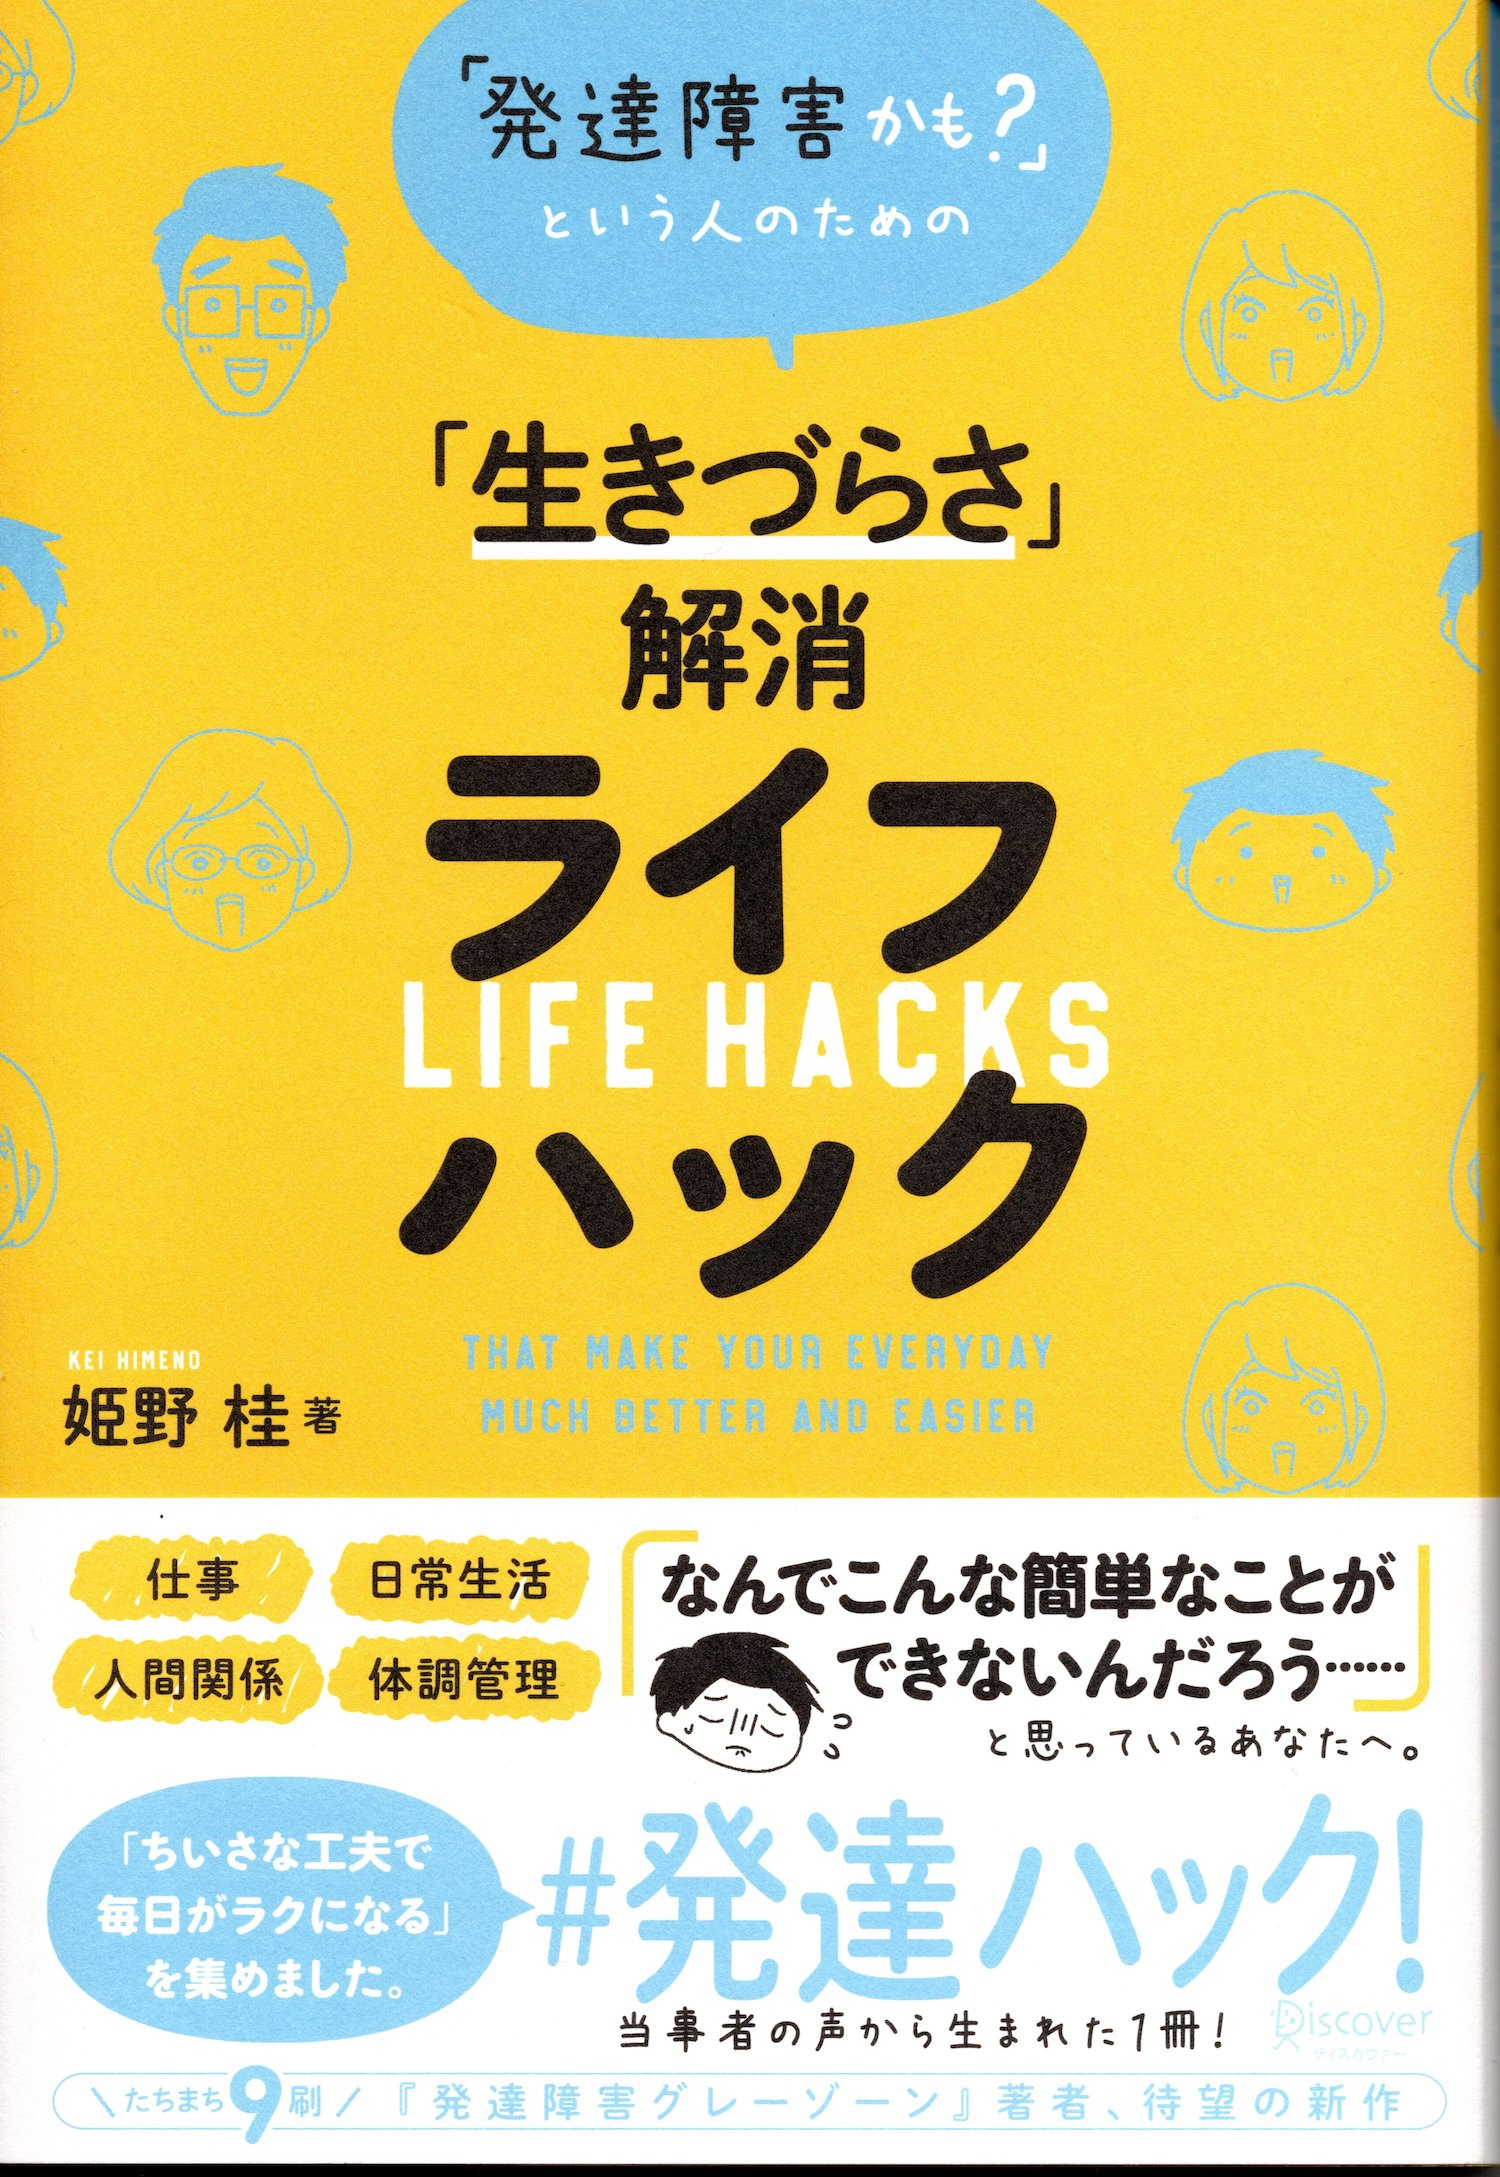 Developmental Disorders: Everyday Hacks to Make Life Easier